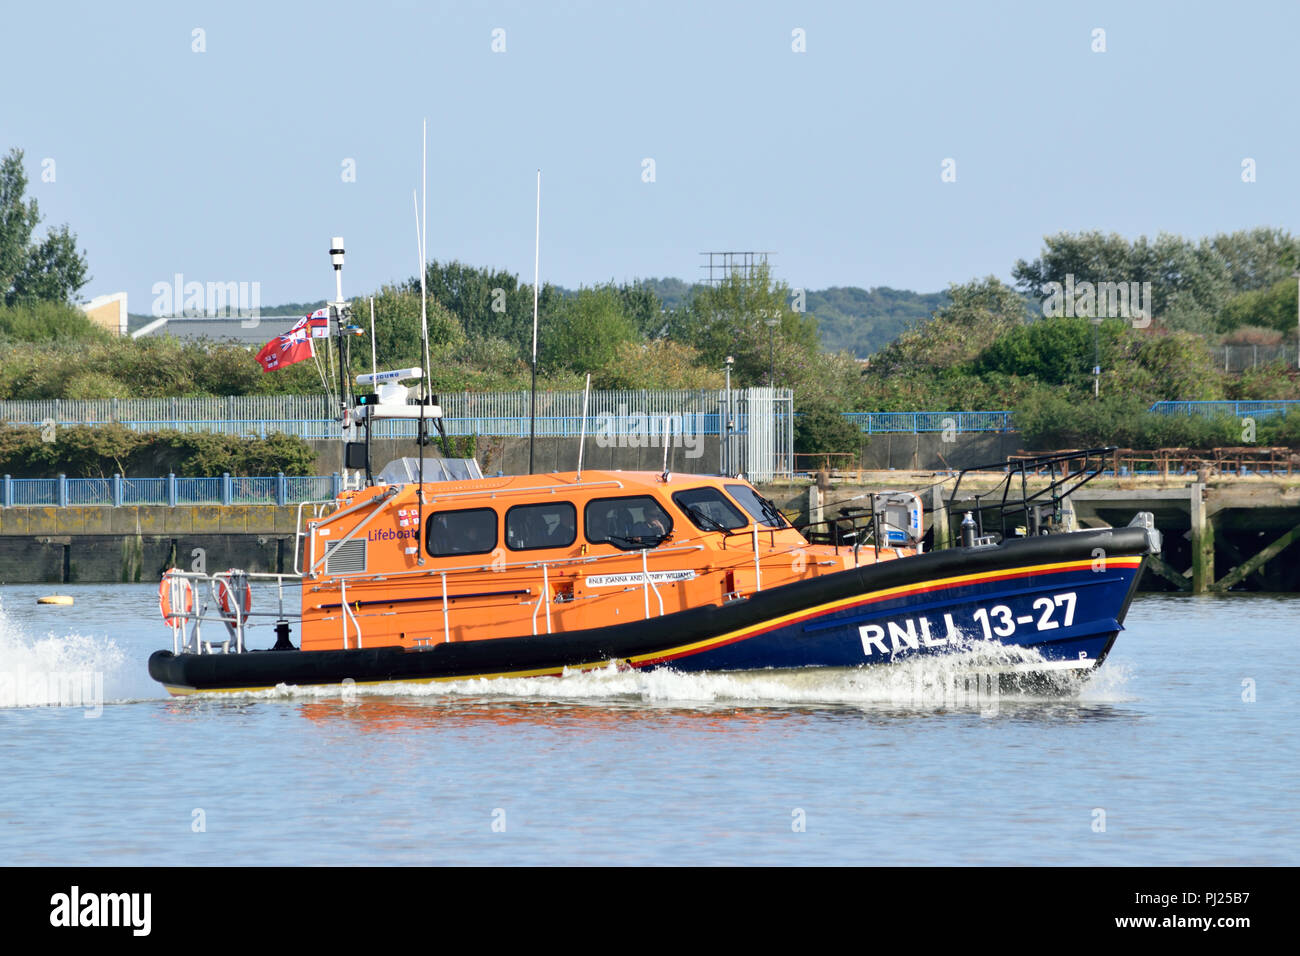 """London, UK, 3rd September 2018  – The newest RNLI Shannon-class Lifeboat 13-27, called """"Joanna and Henry Williams"""", seen heading up the River Thames at speed as it heads to London. Credit: A Christy/Alamy Live News. Stock Photo"""